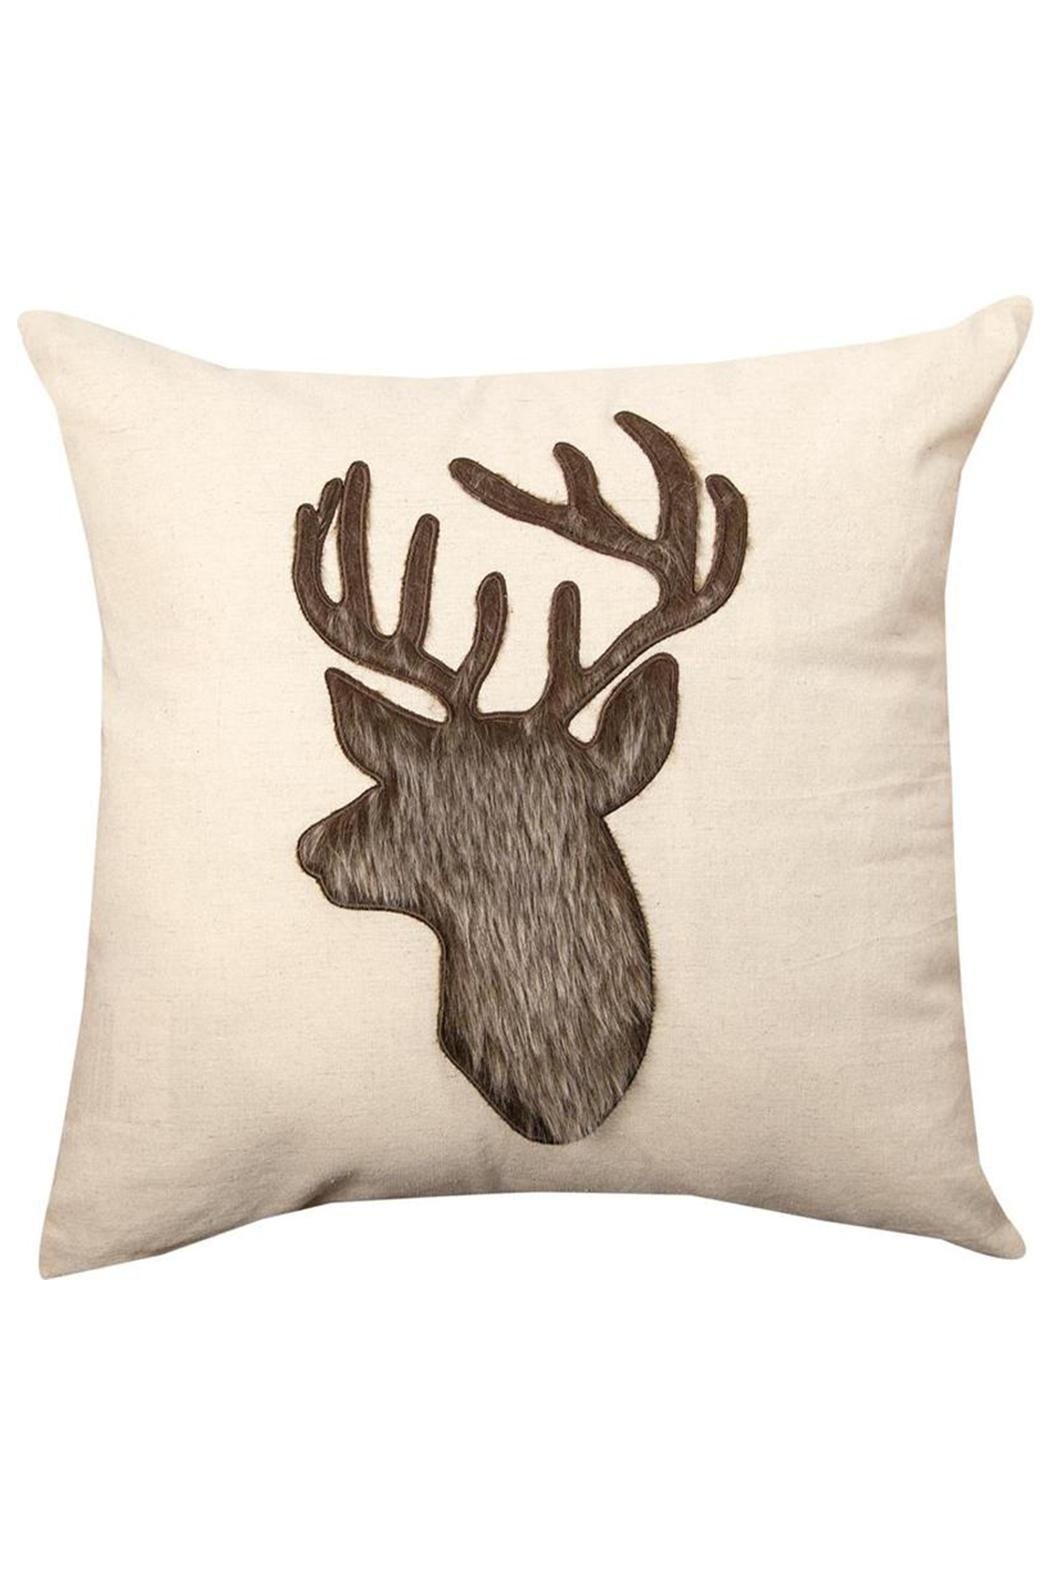 Manual Woodworkers and Weavers Deer Applique Pillow - Main Image